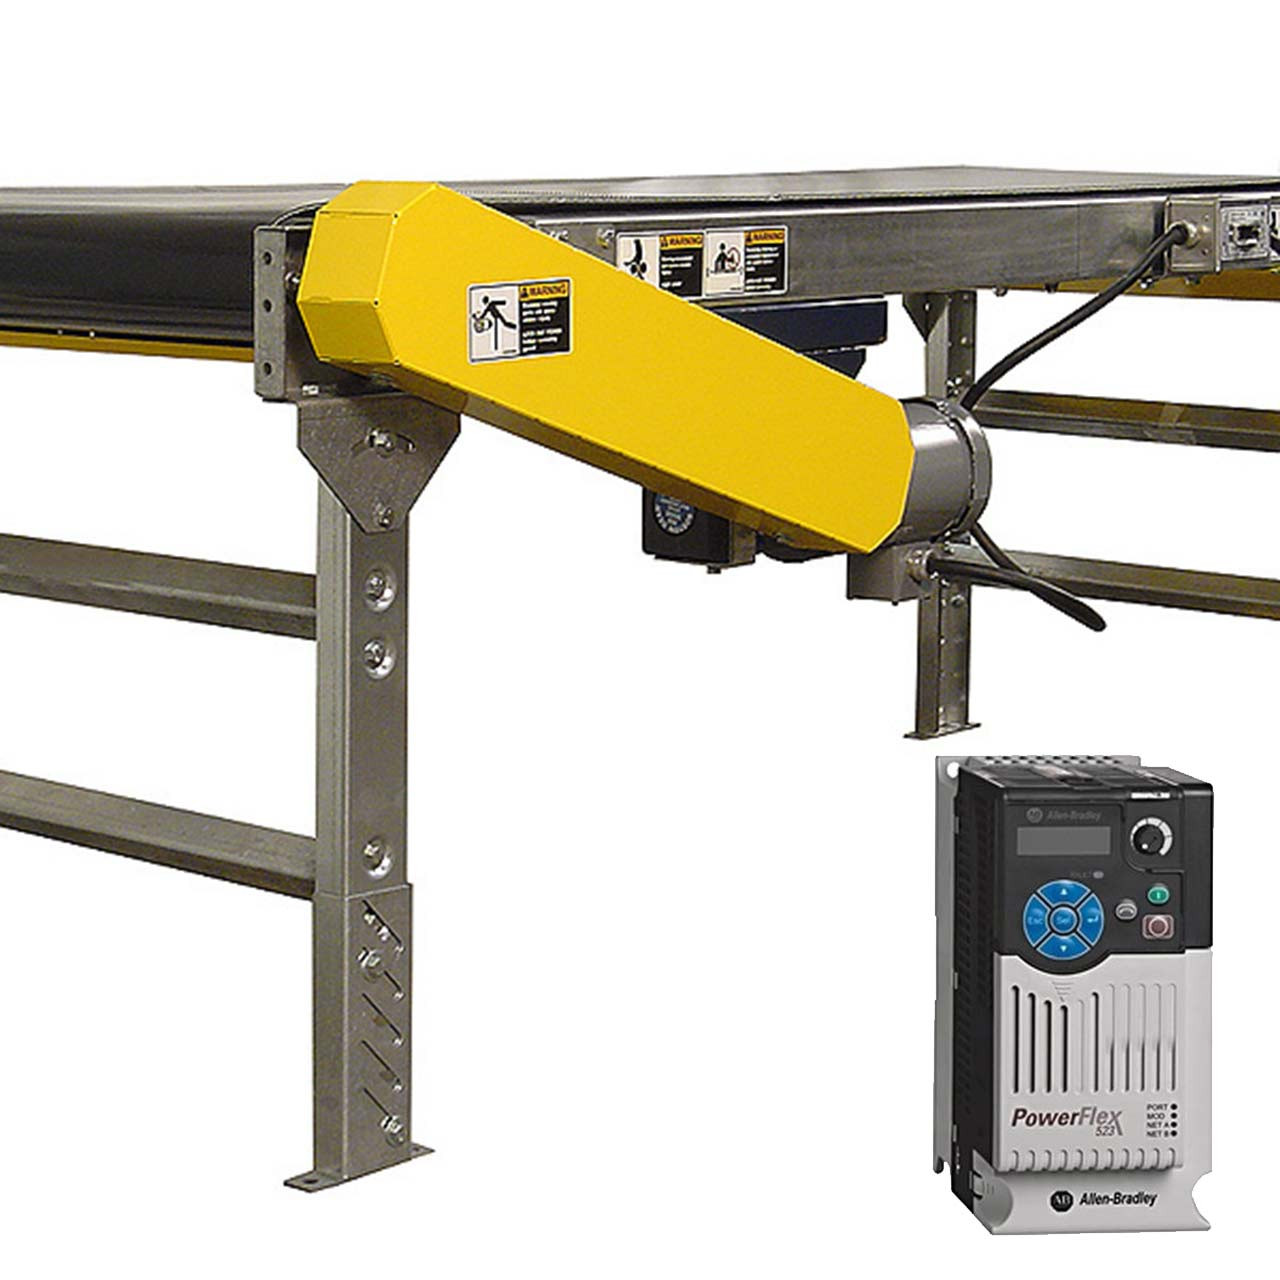 Power belt conveyor with variable speed controller